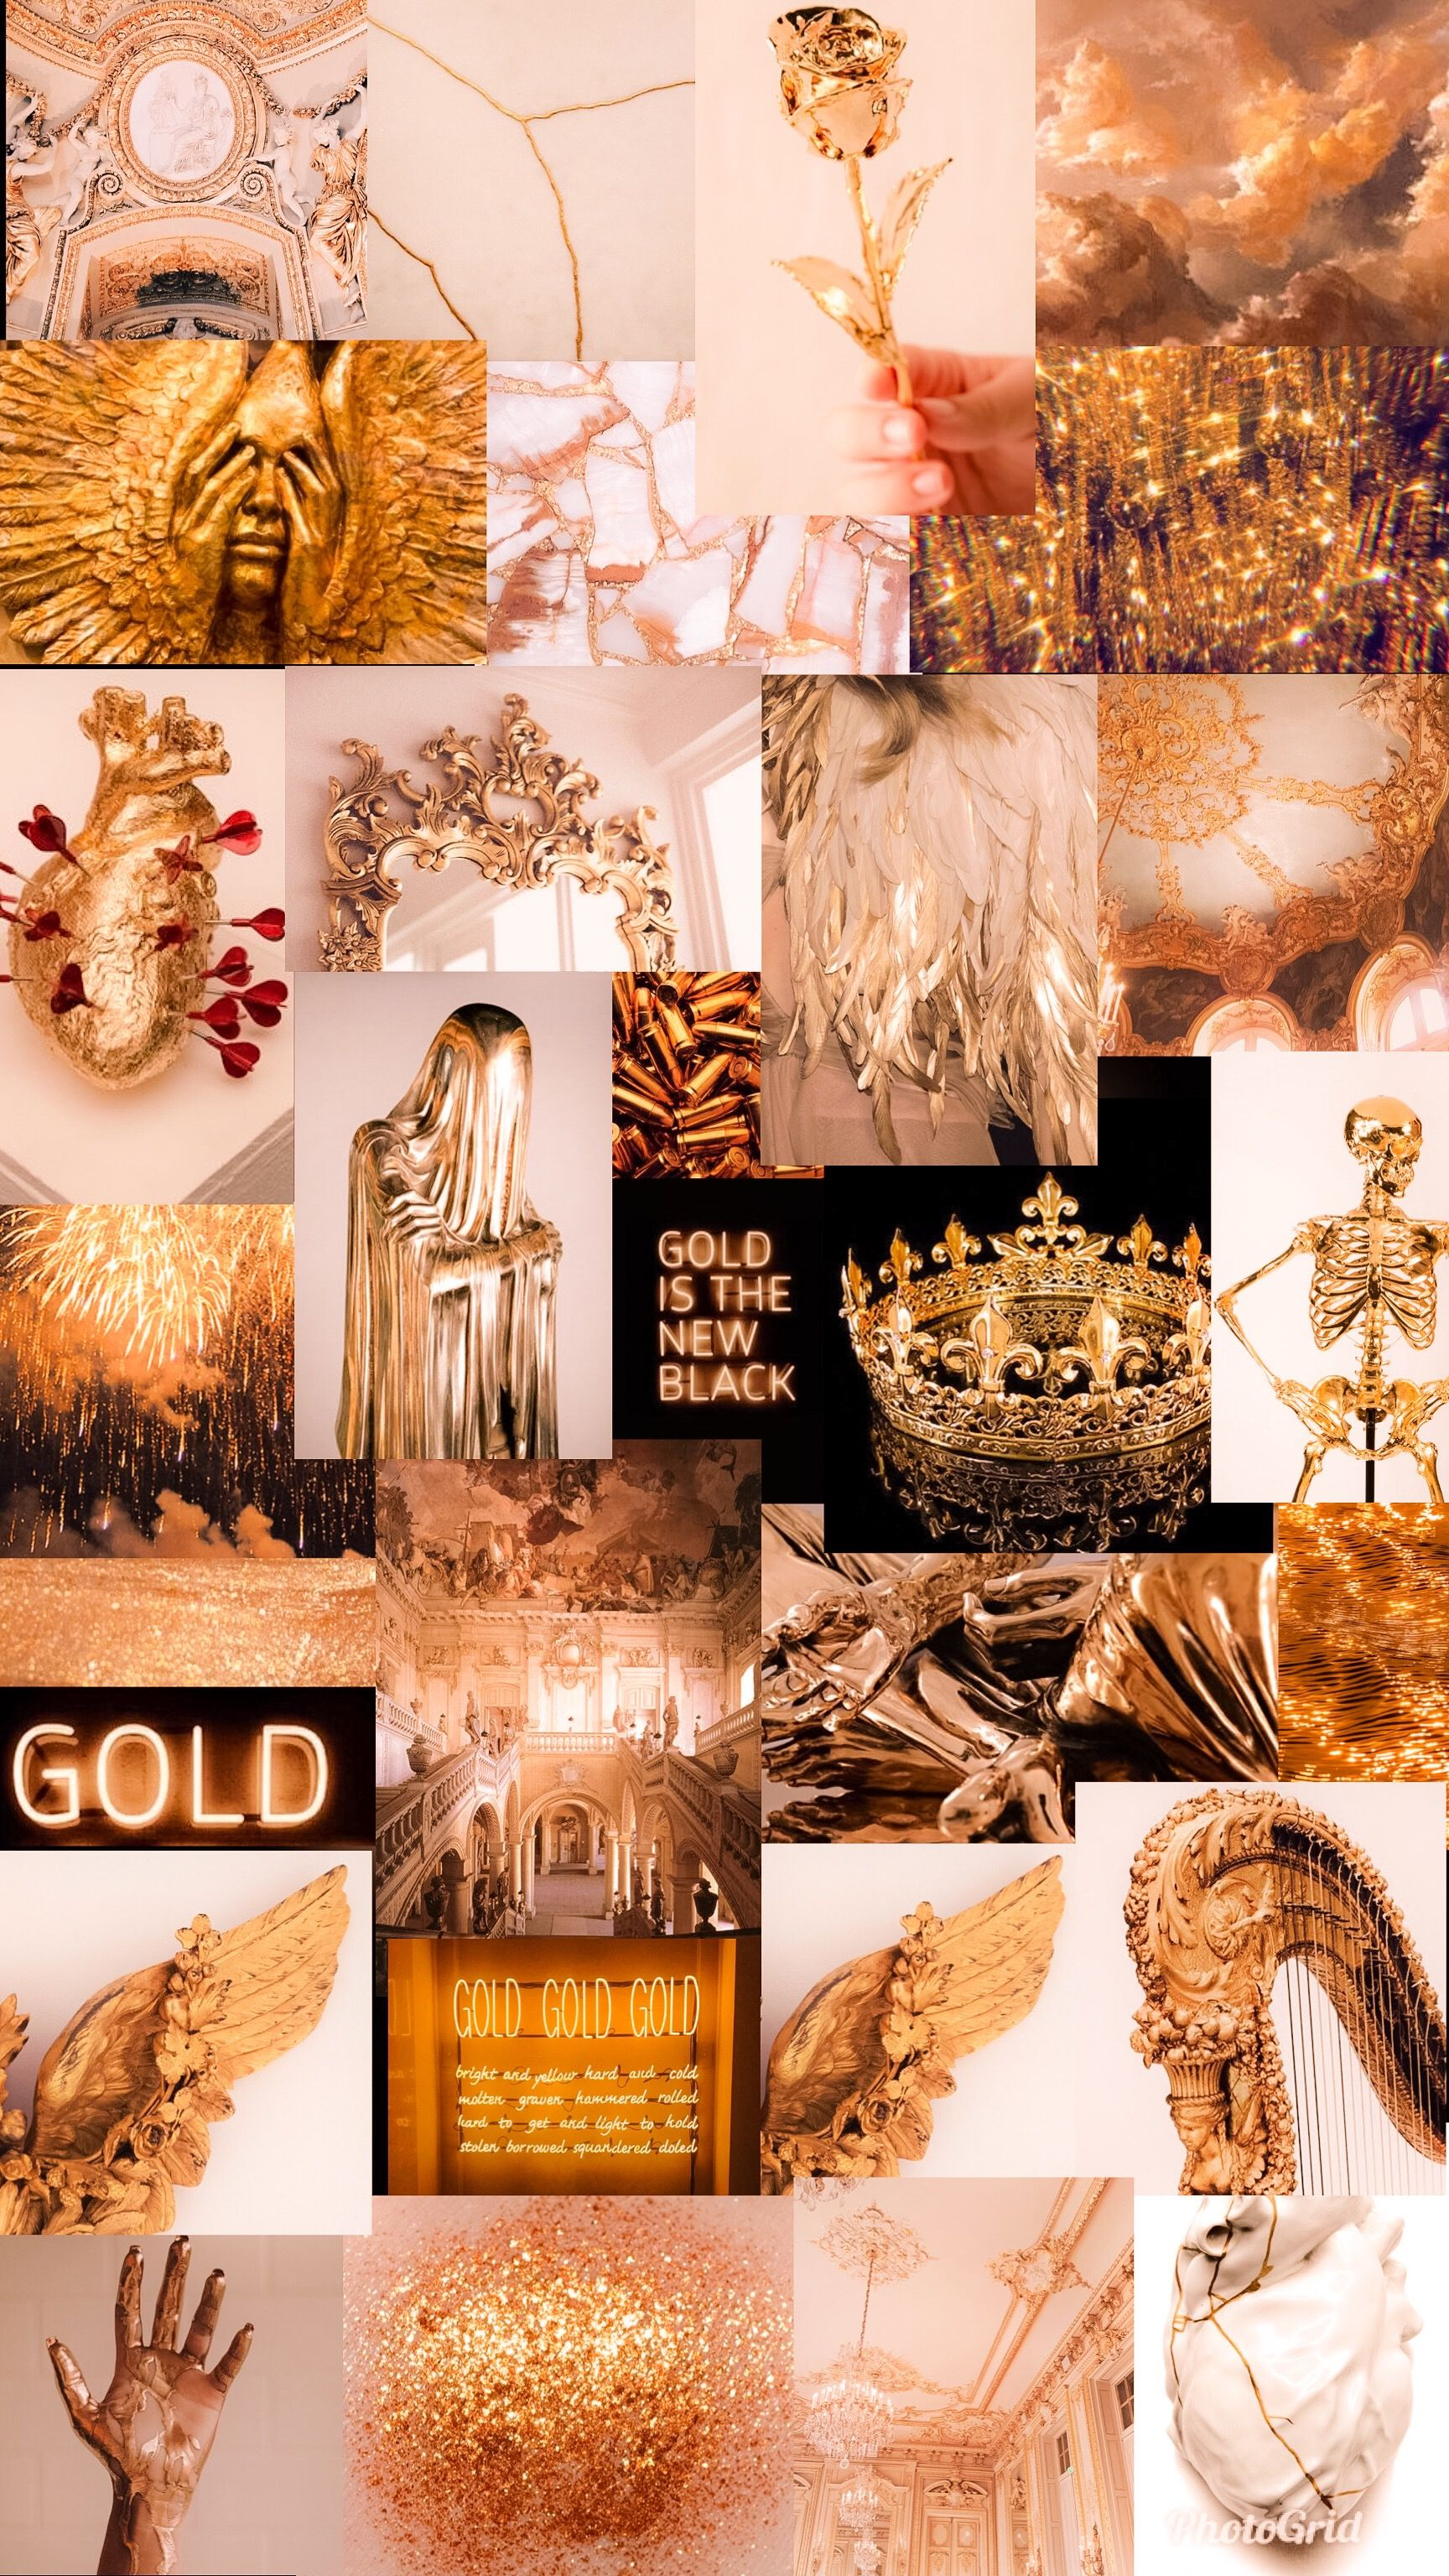 Light Yellow Aesthetic Wallpaper Collage My chemical romance mcr aesthetic wallpaper collage my edits gerard. light yellow aesthetic wallpaper collage